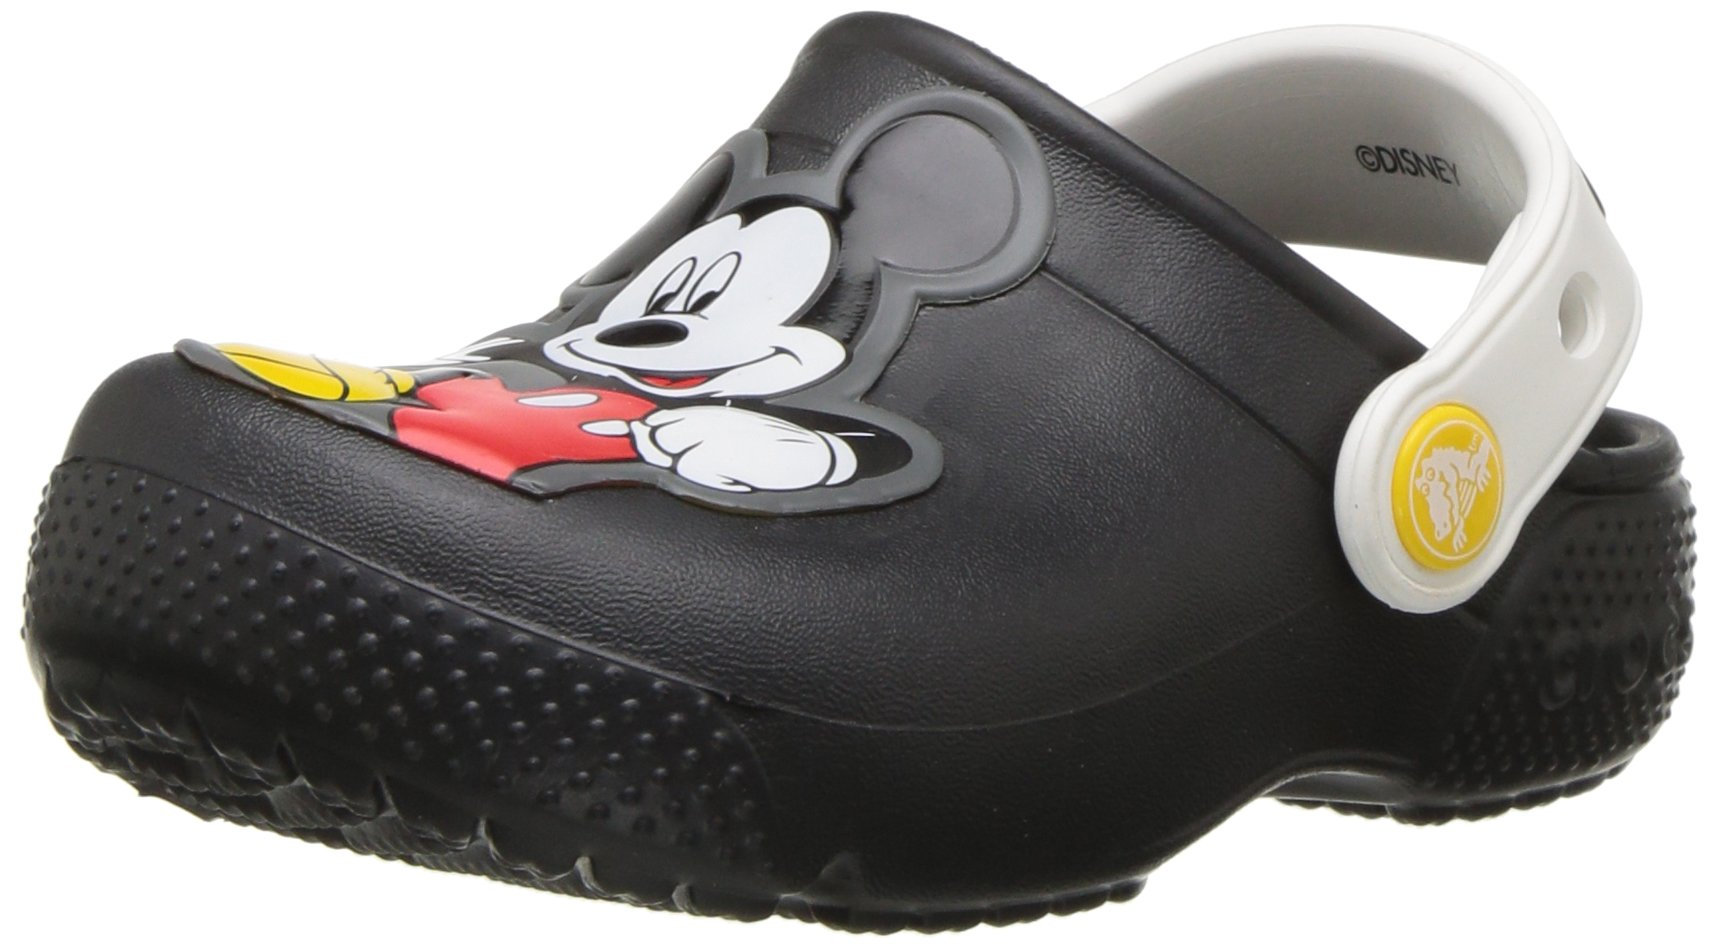 Crocs Boys' Fun Lab Mickey Clog K, Black, 5 M US Toddler